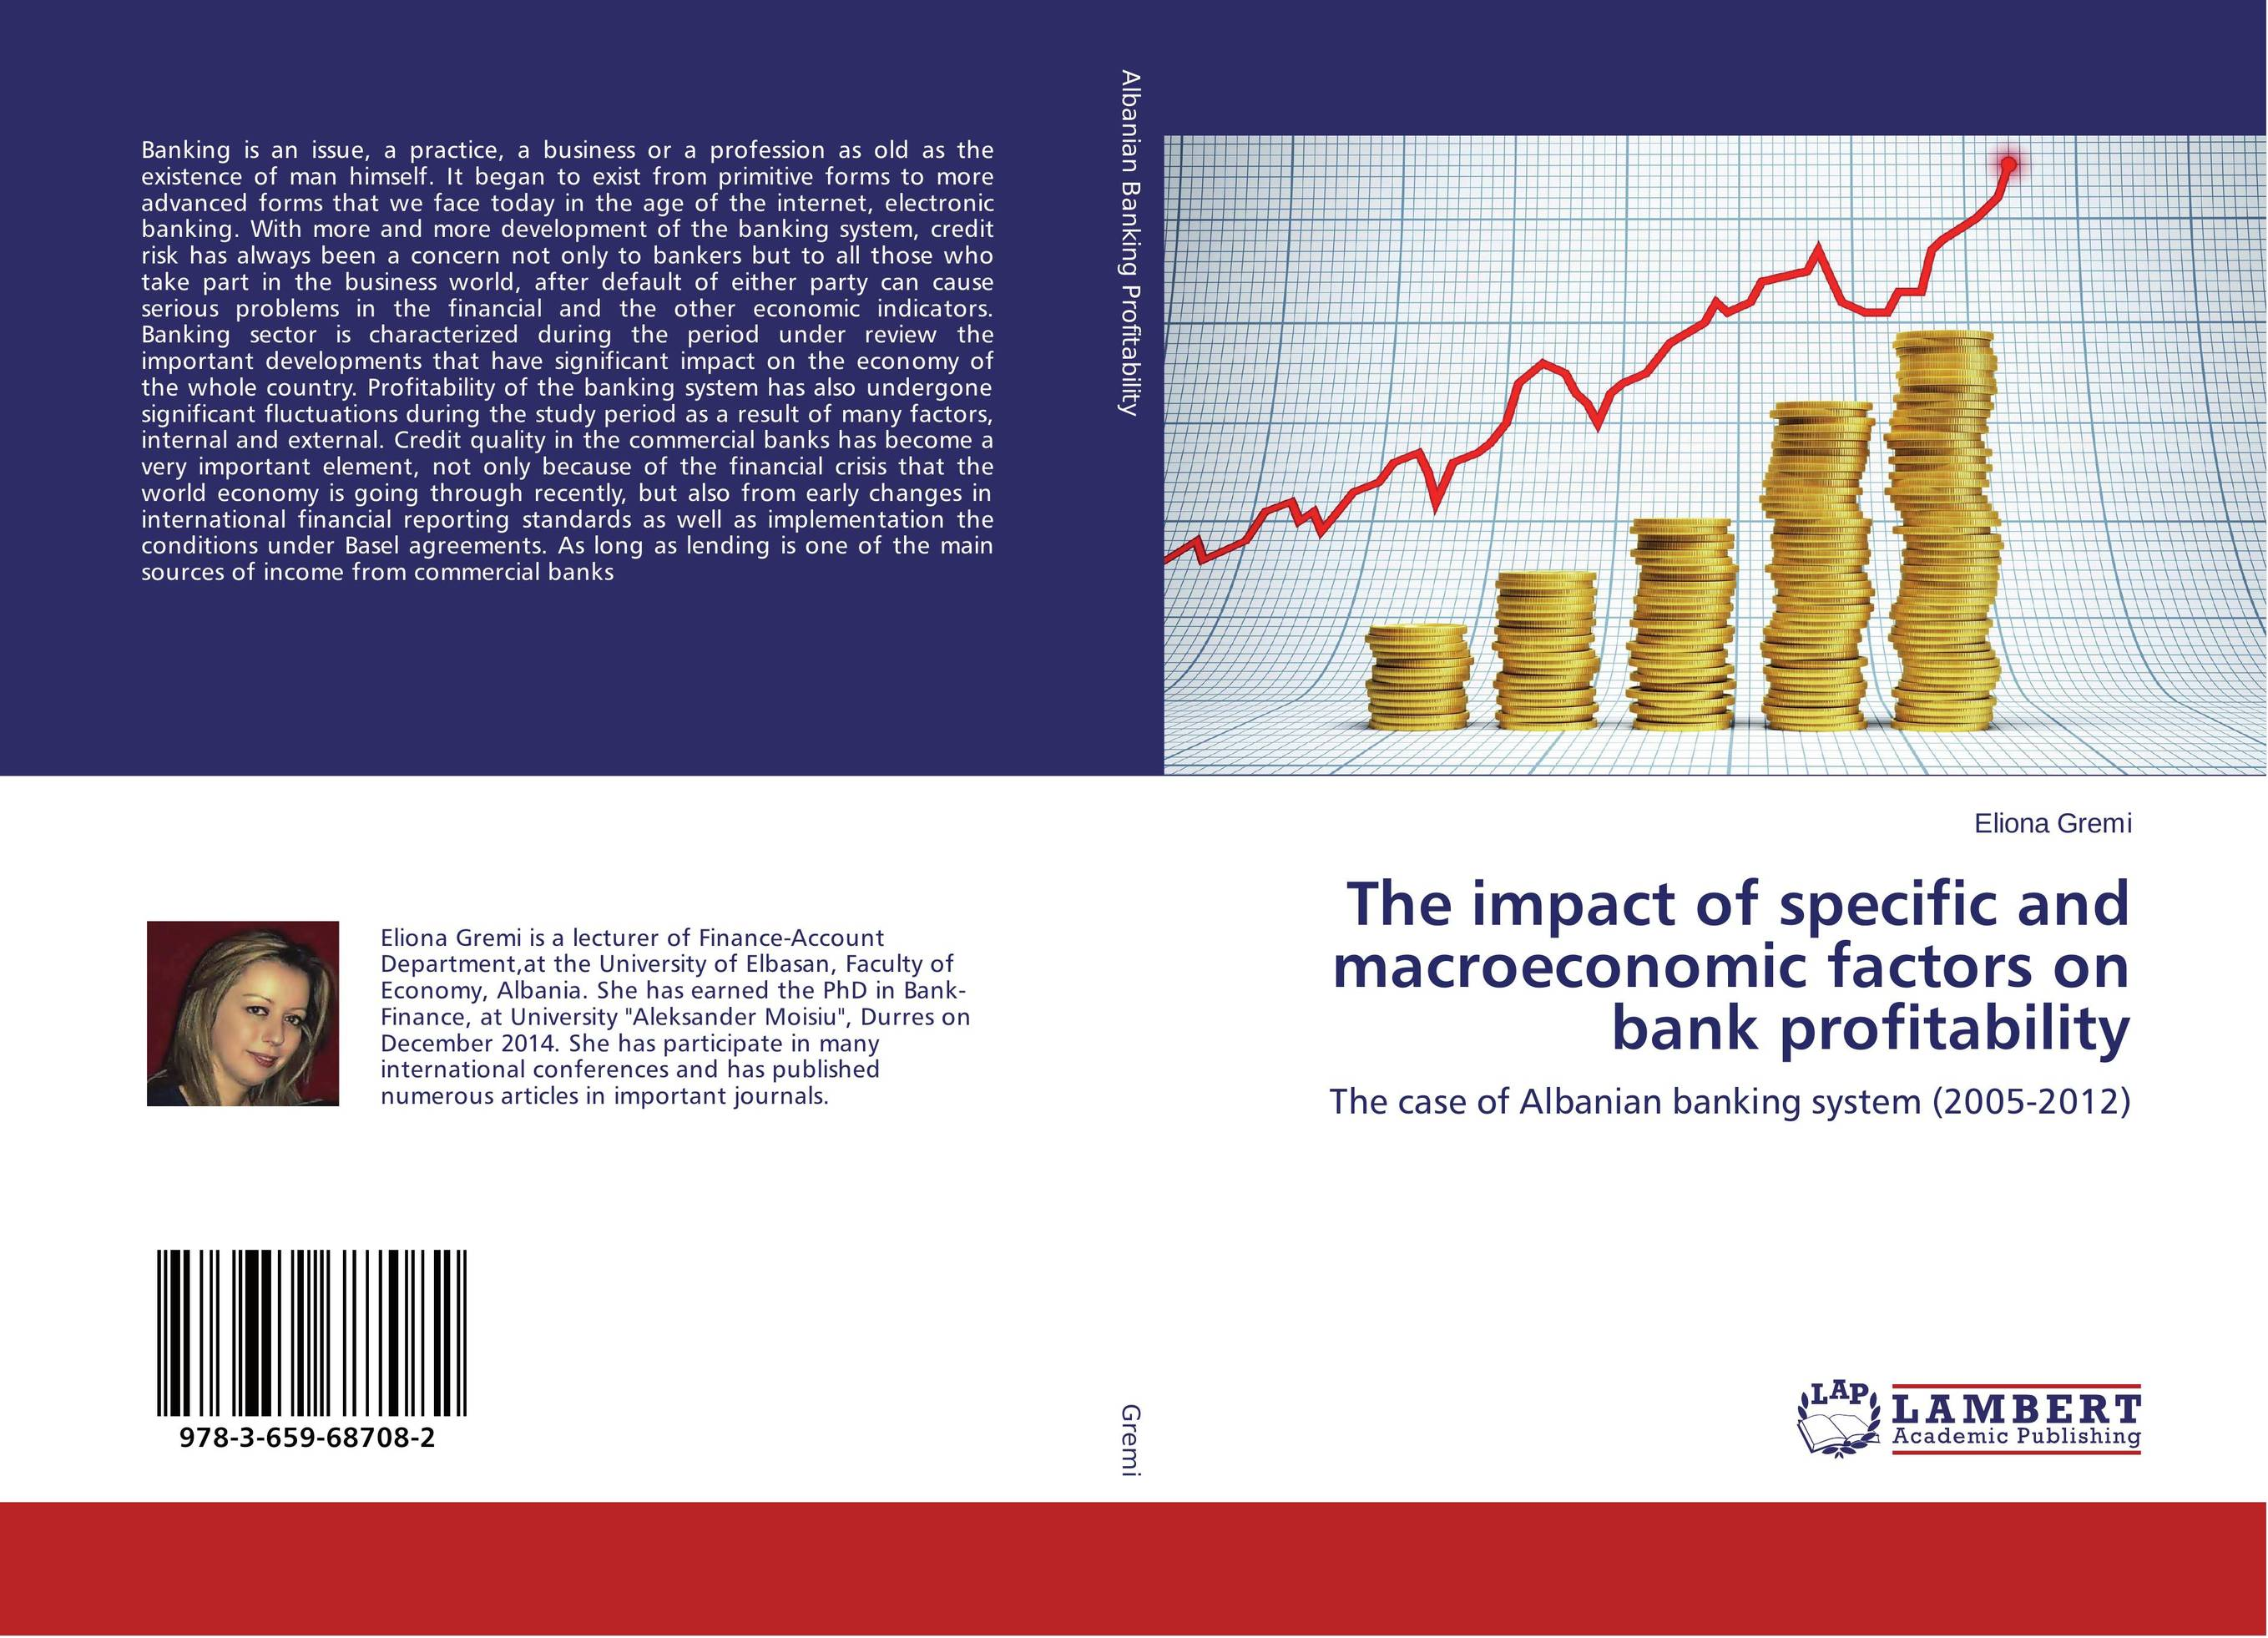 The impact of specific and macroeconomic factors on bank profitability